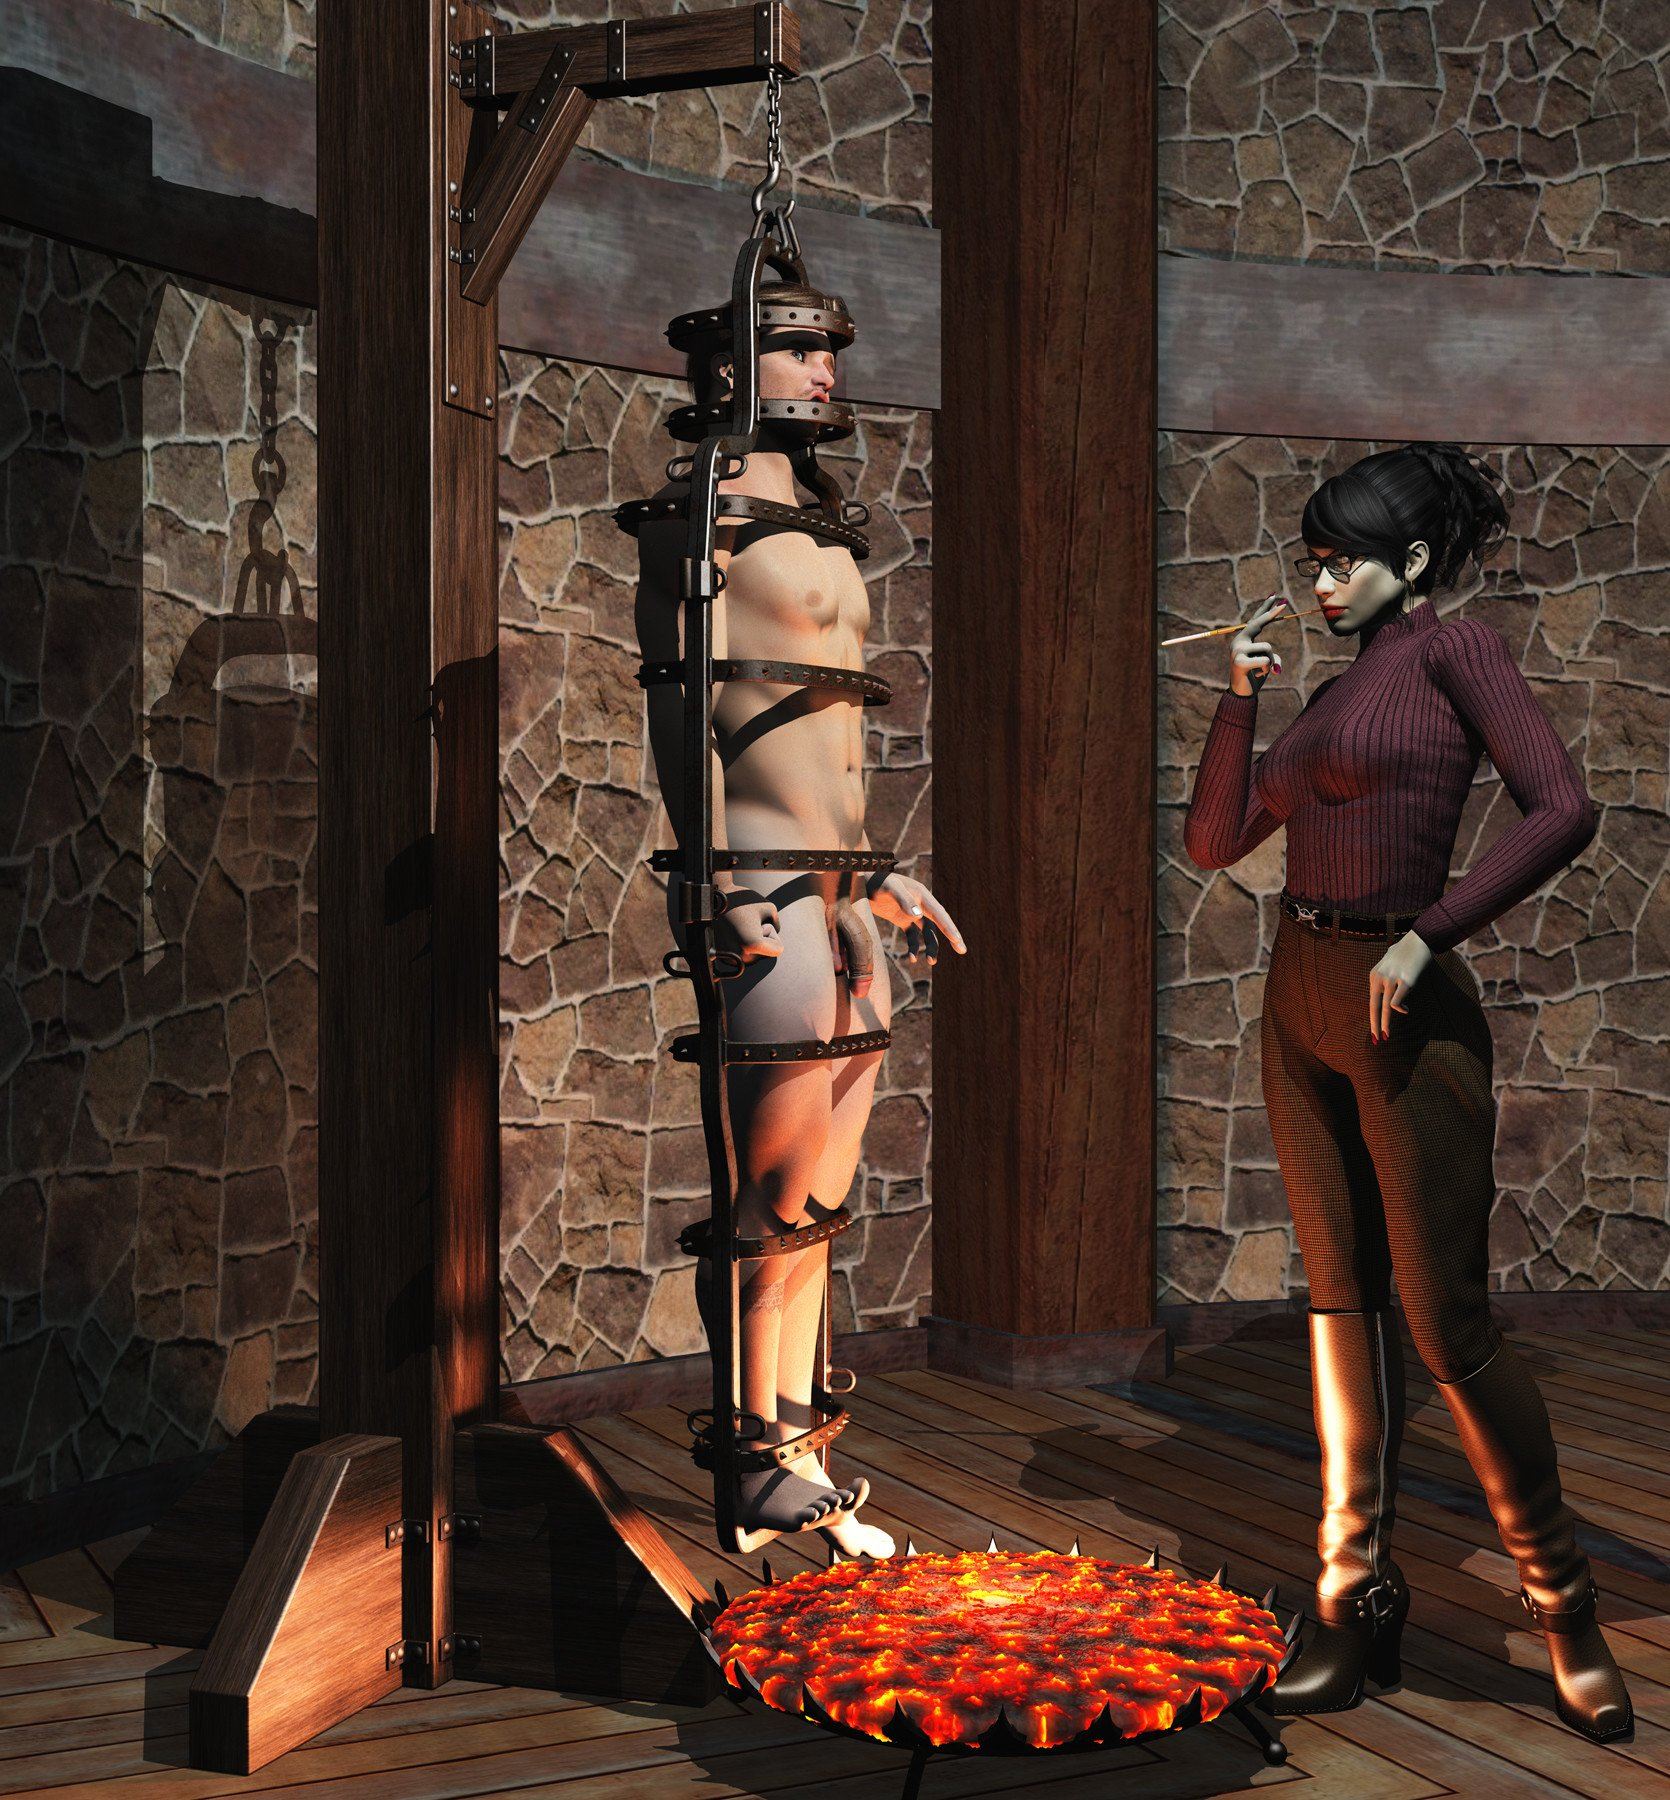 Executions in bdsm art